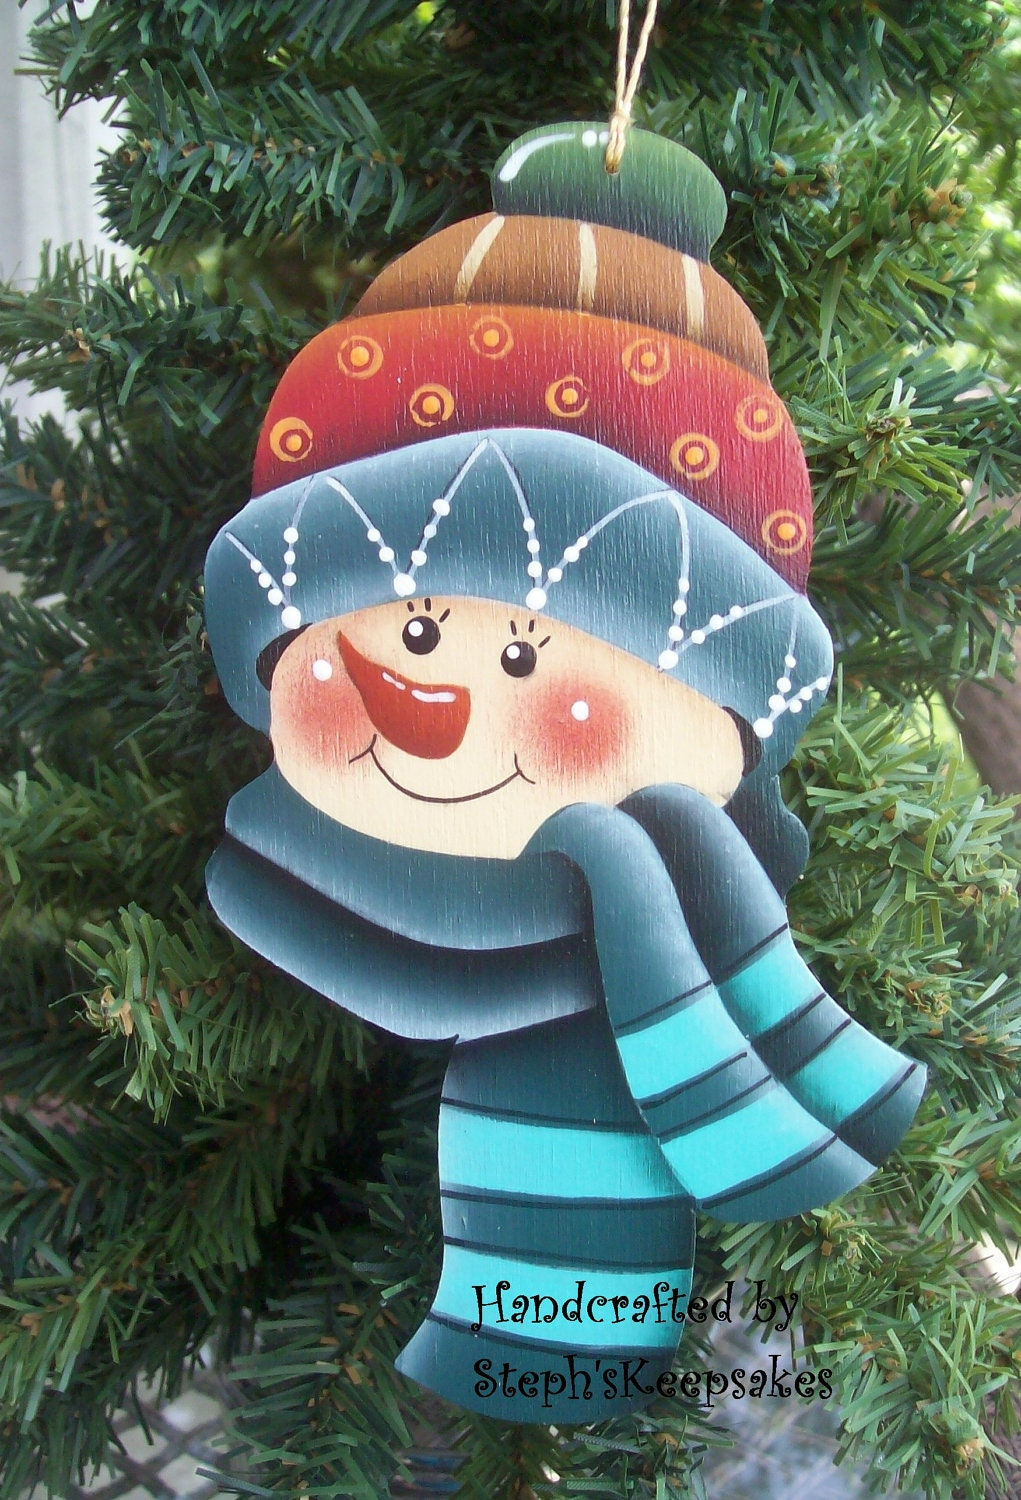 wooden hand painted snowman ornament by stephskeepsakes on etsy. Black Bedroom Furniture Sets. Home Design Ideas